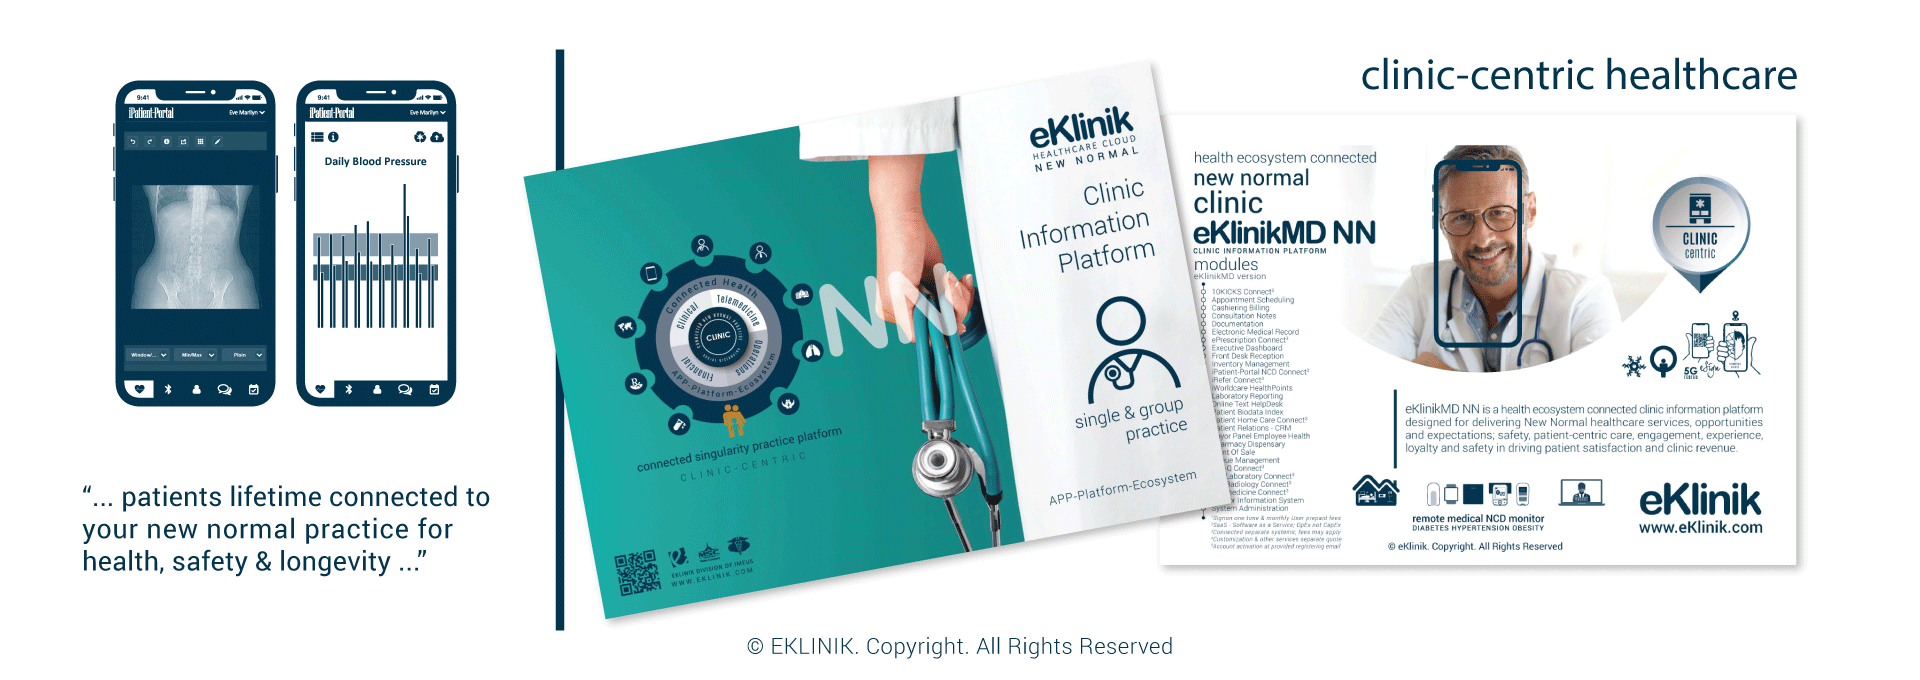 eKlinik Healthcare Cloud Point-Of-Care